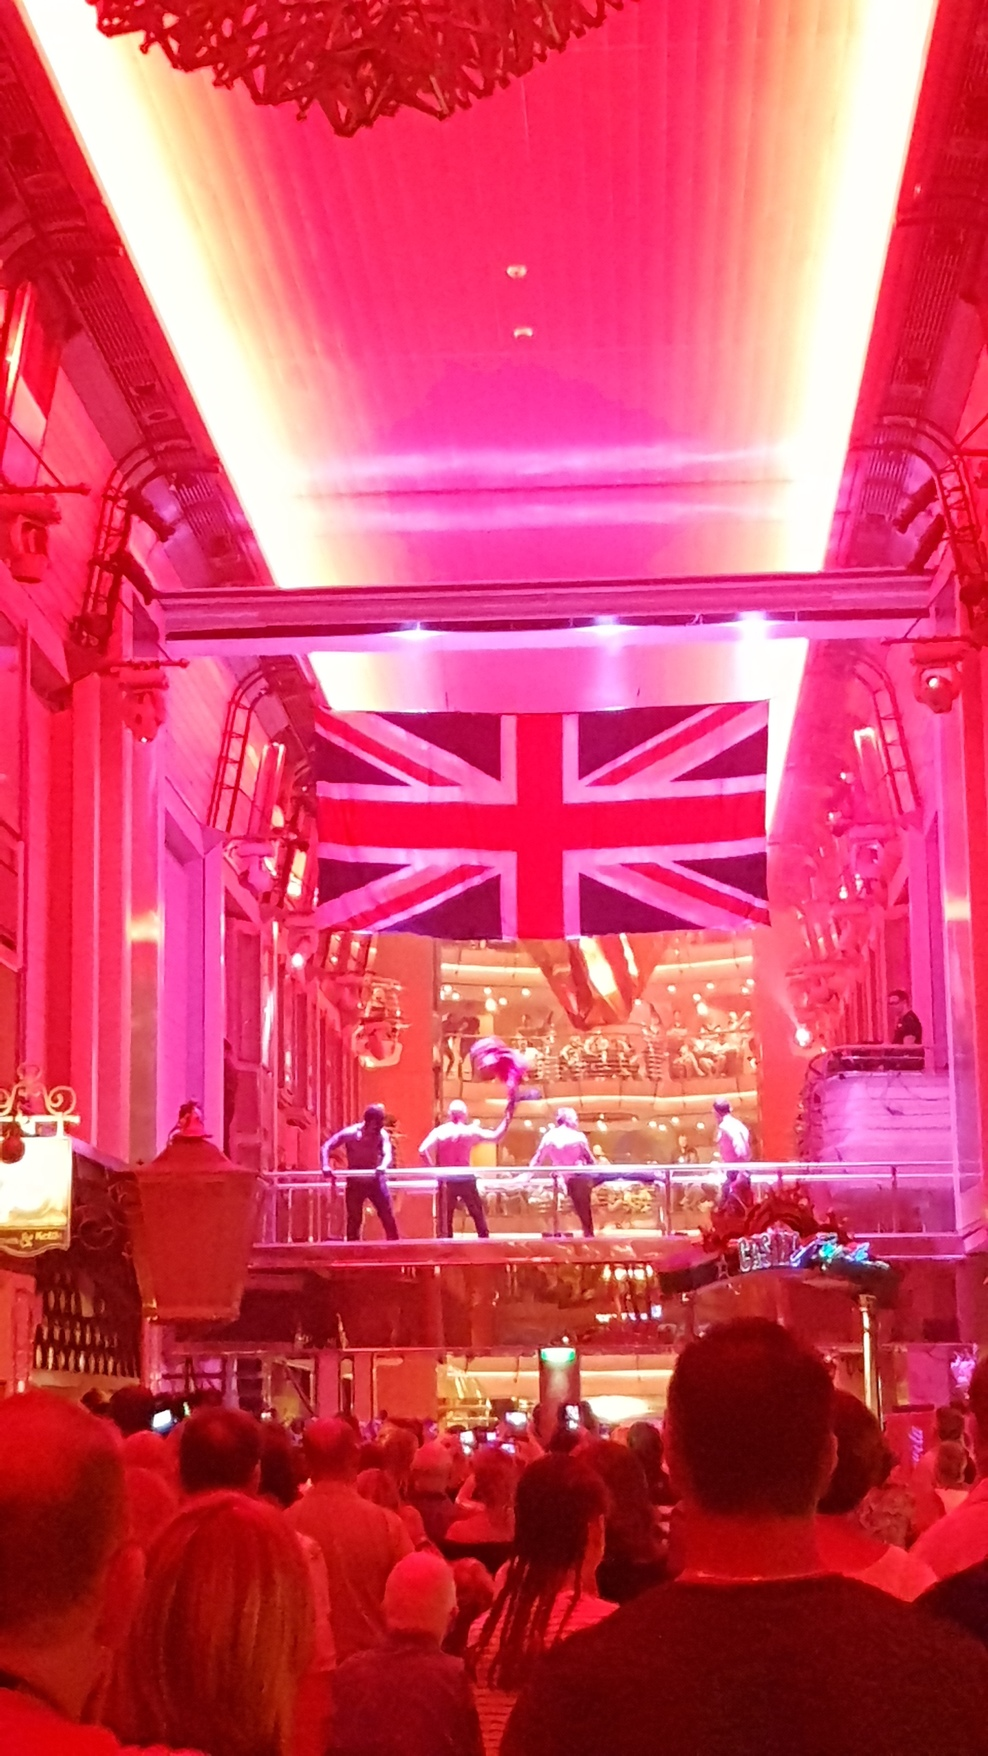 Rule Britannia night